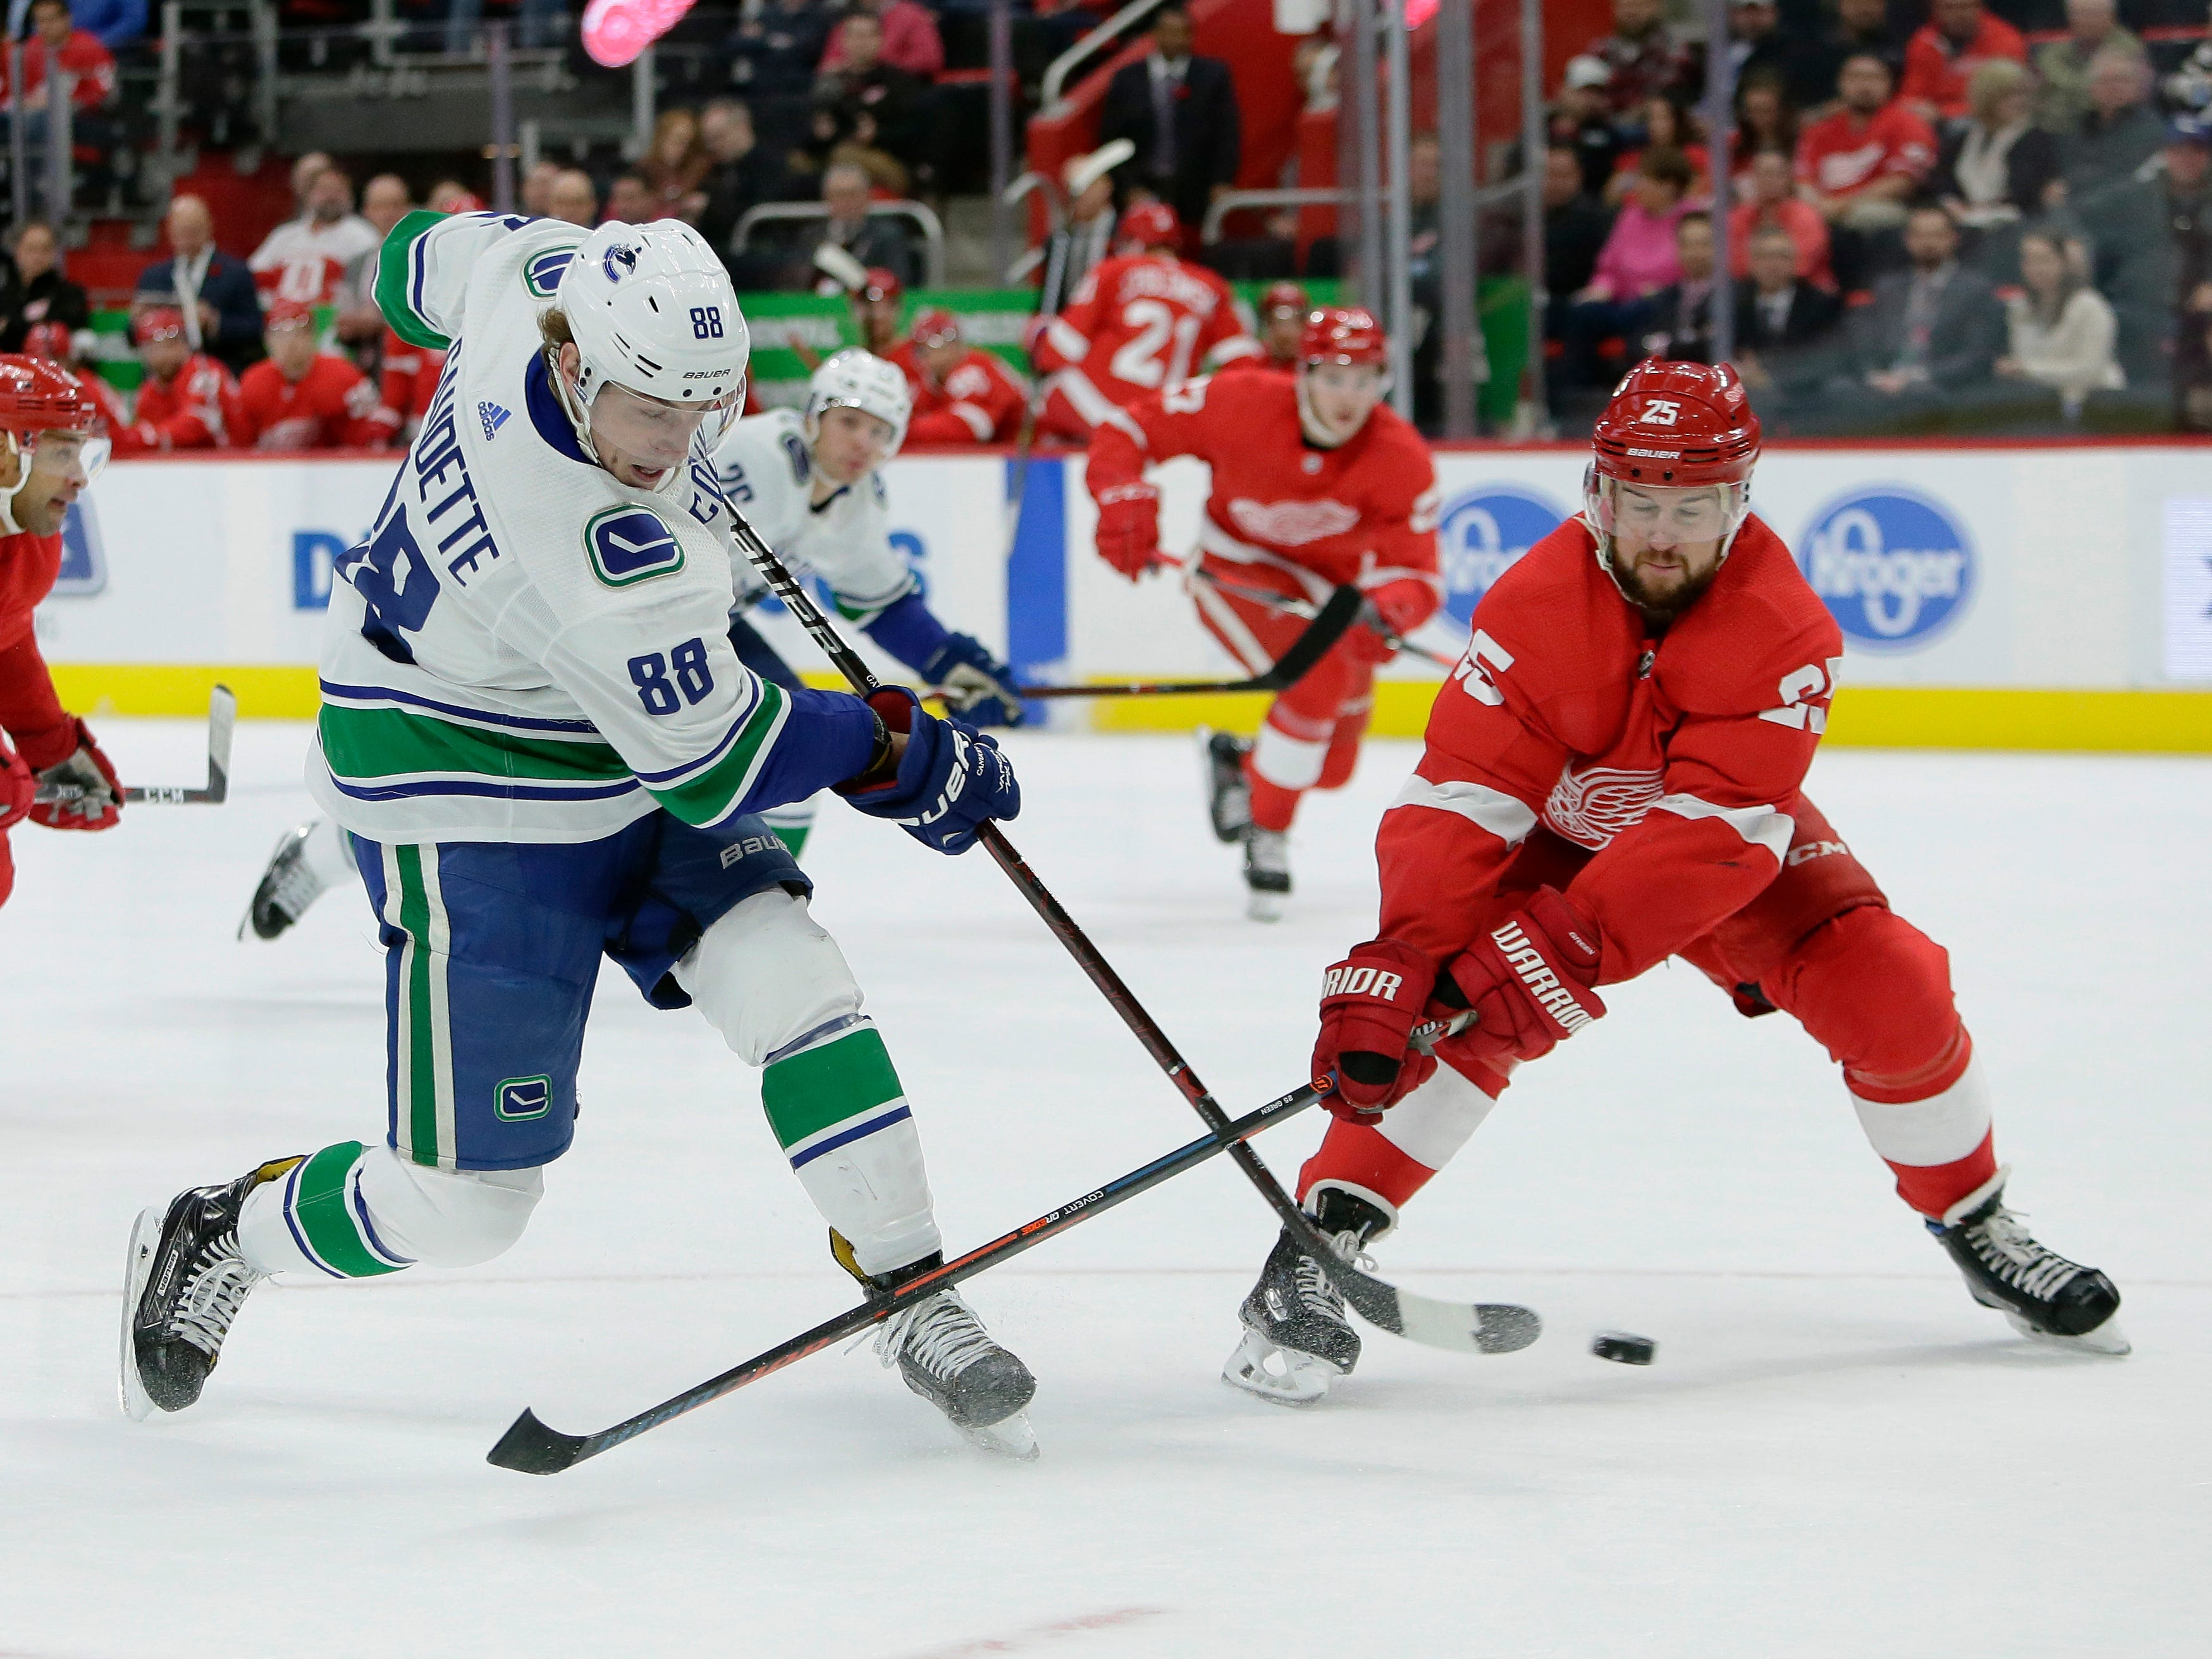 Vancouver Canucks center Adam Gaudette (88) takes a shot on goal against Detroit Red Wings defenseman Mike Green (25) during the first period of an NHL hockey game Tuesday, Nov. 6, 2018, in Detroit.